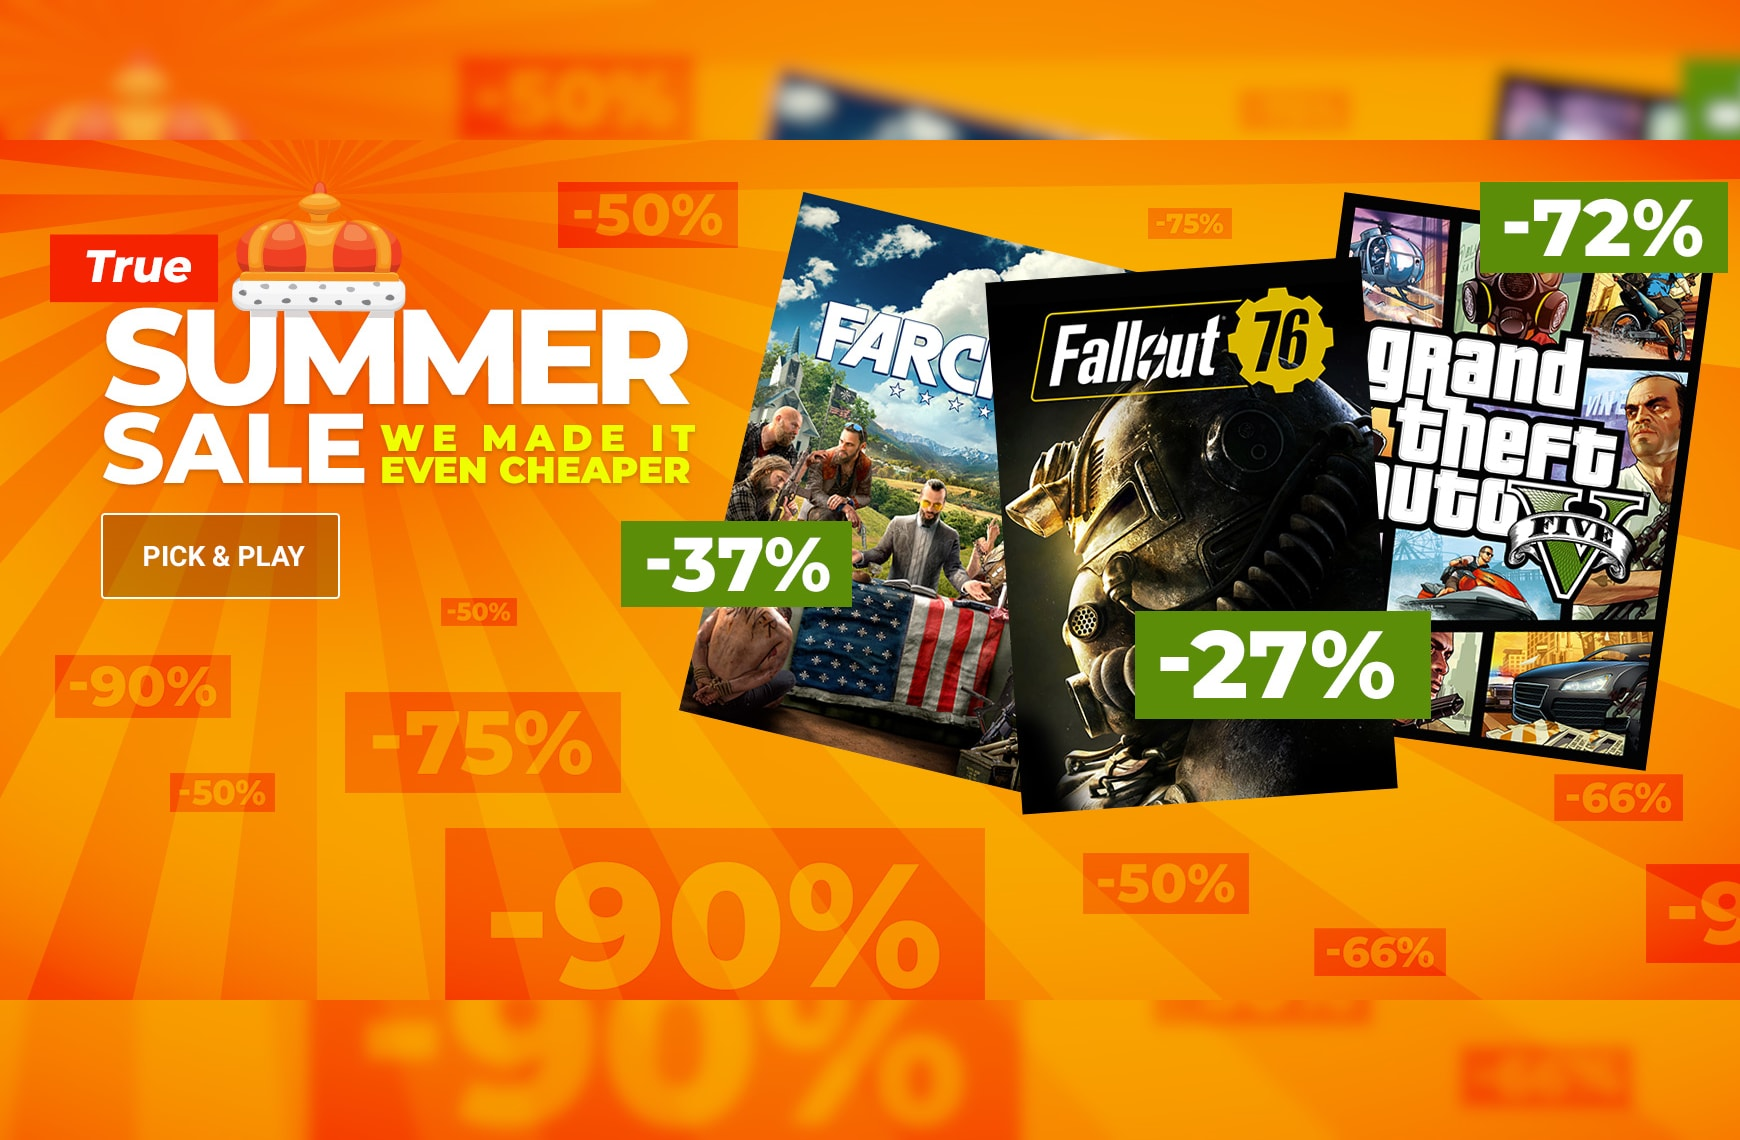 The Summer Sale to end all Summer Sales!